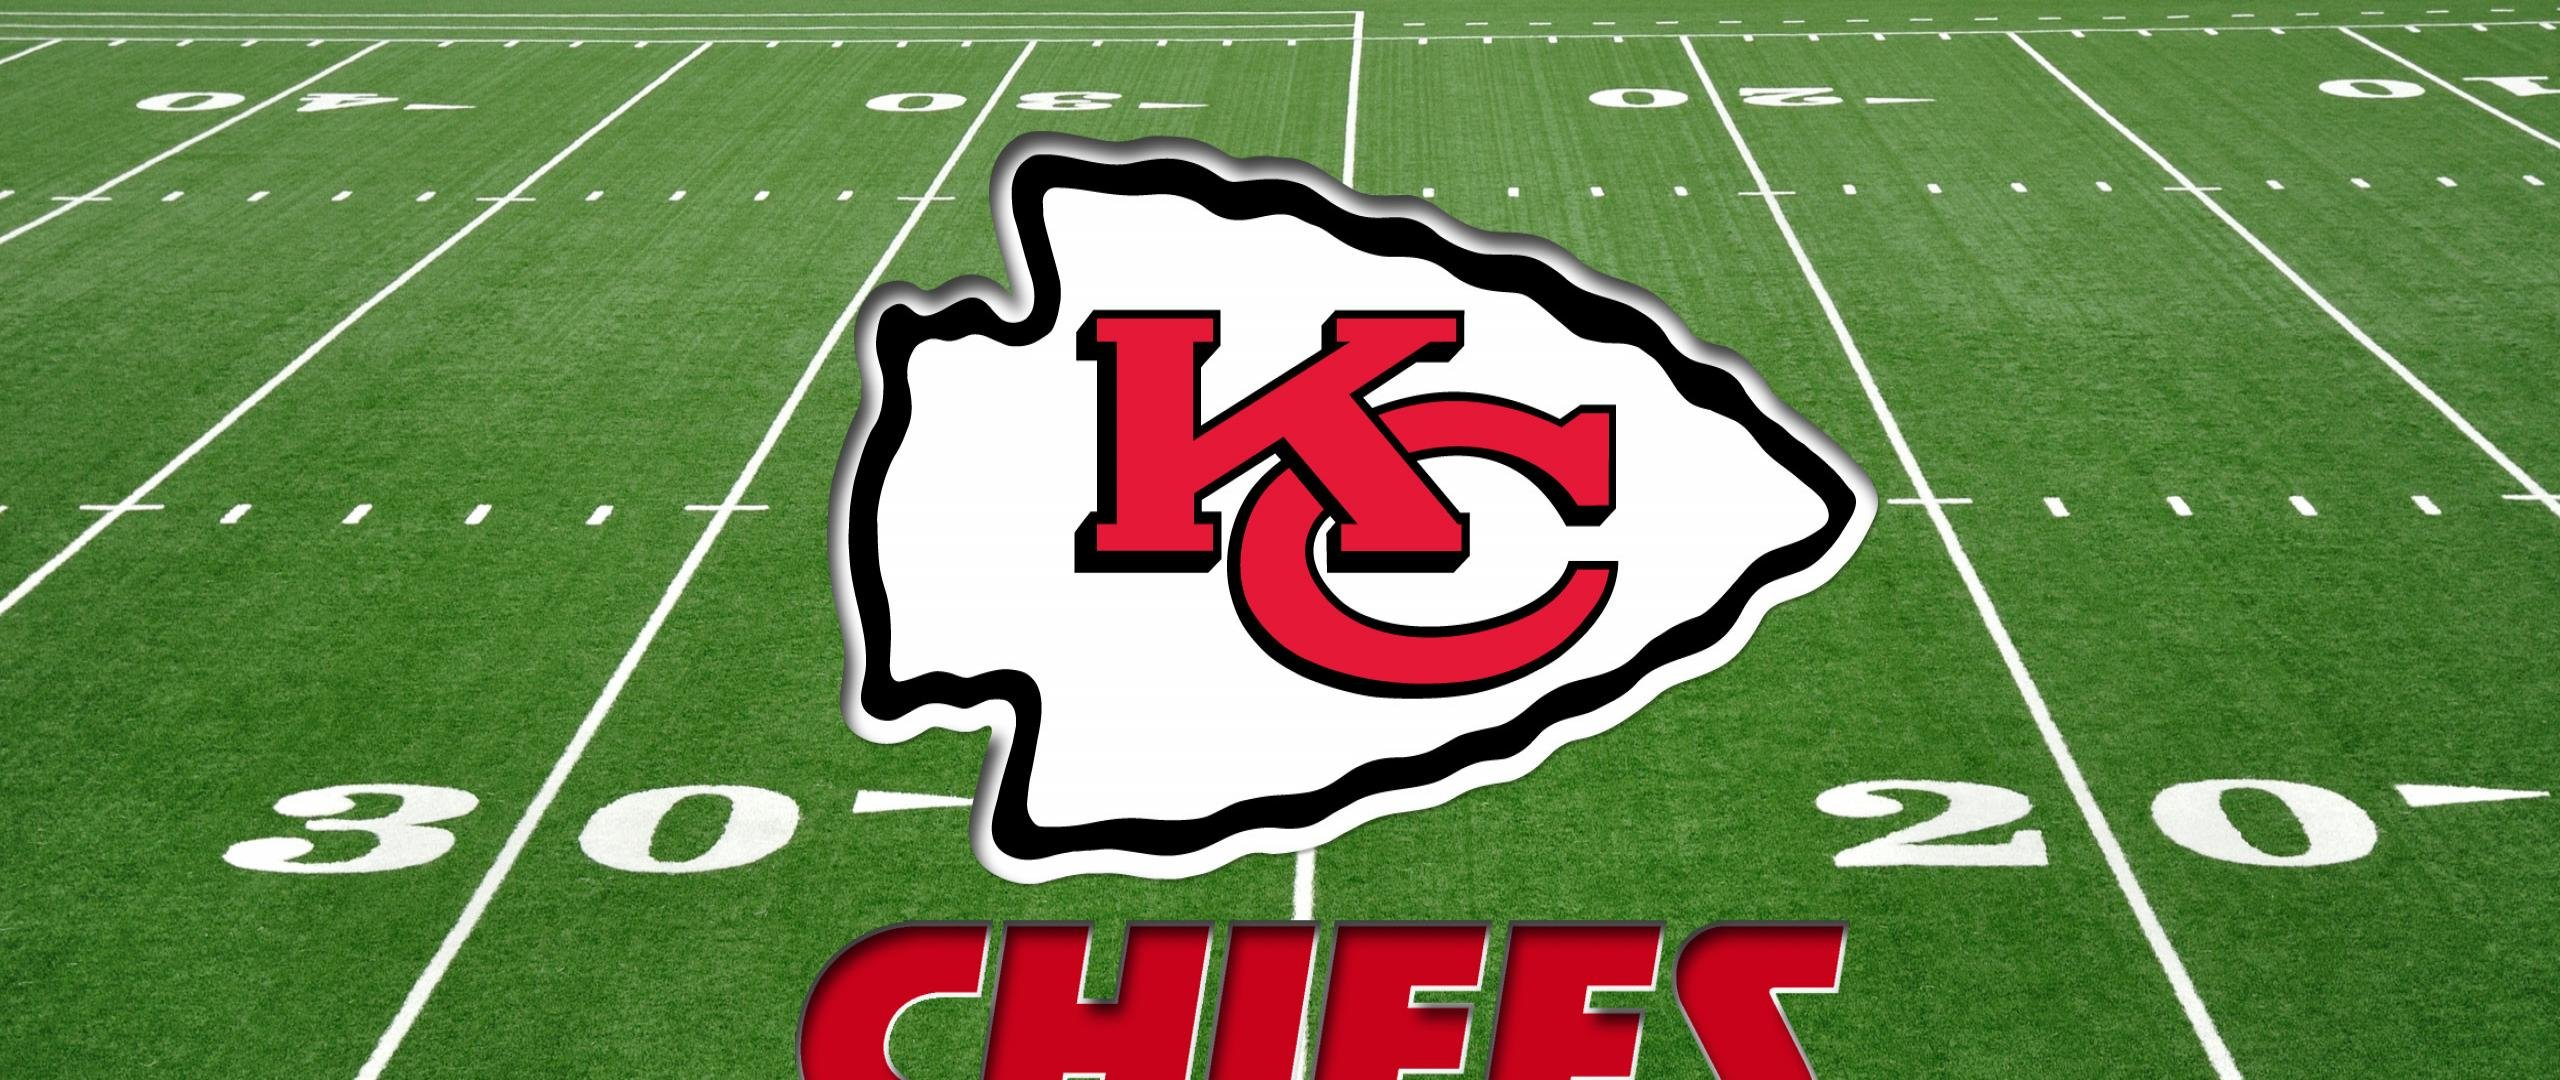 Download Hd 2560x1080 Kansas City Chiefs Pc Wallpaper Id 174337 For Free